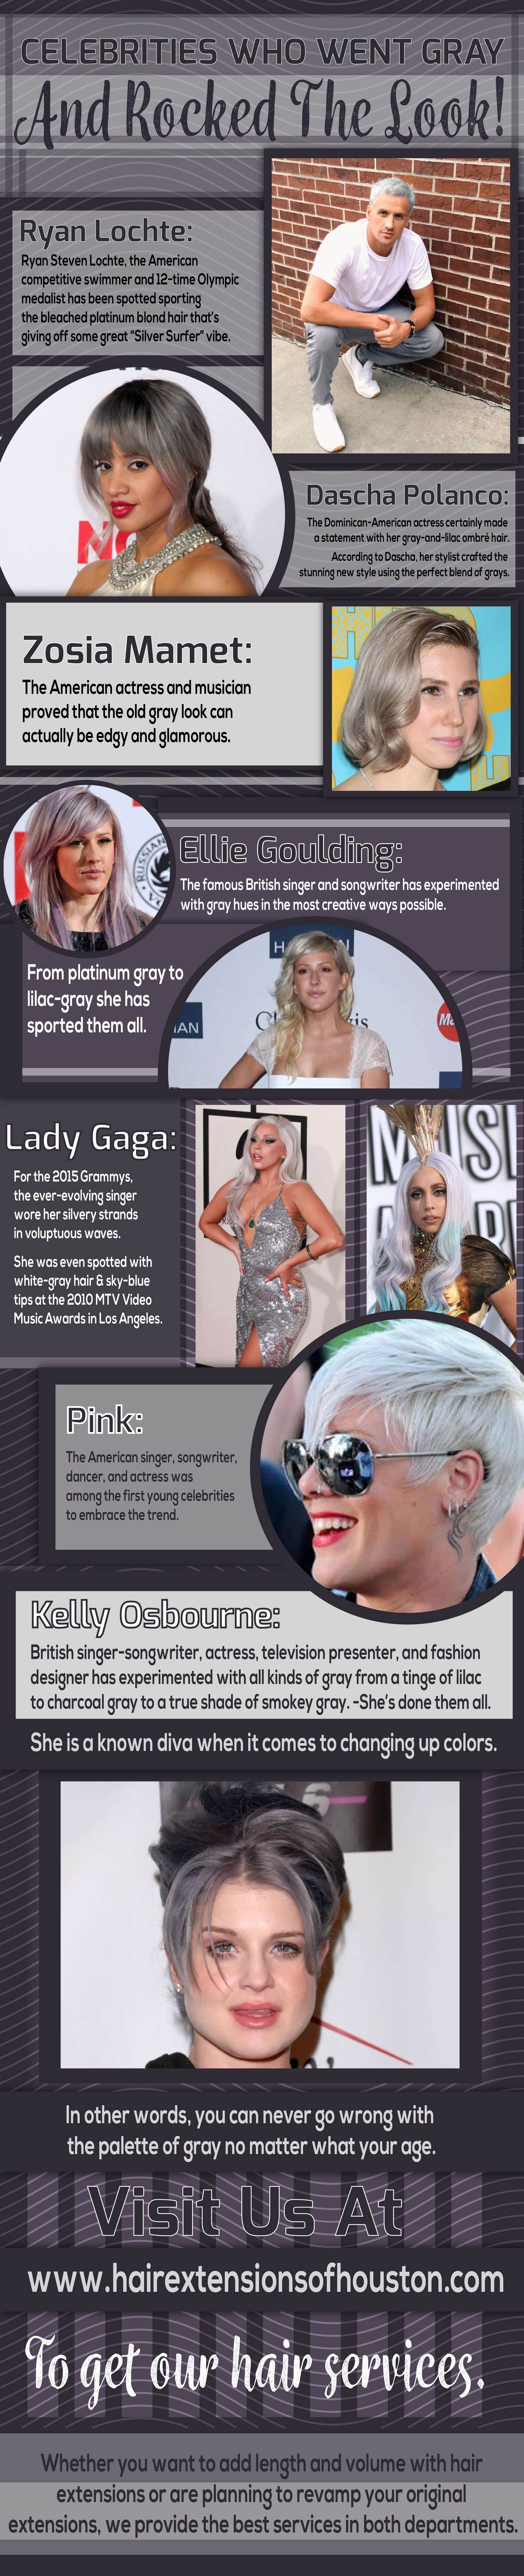 Celebrities Who Went Gray And Rocked The Look